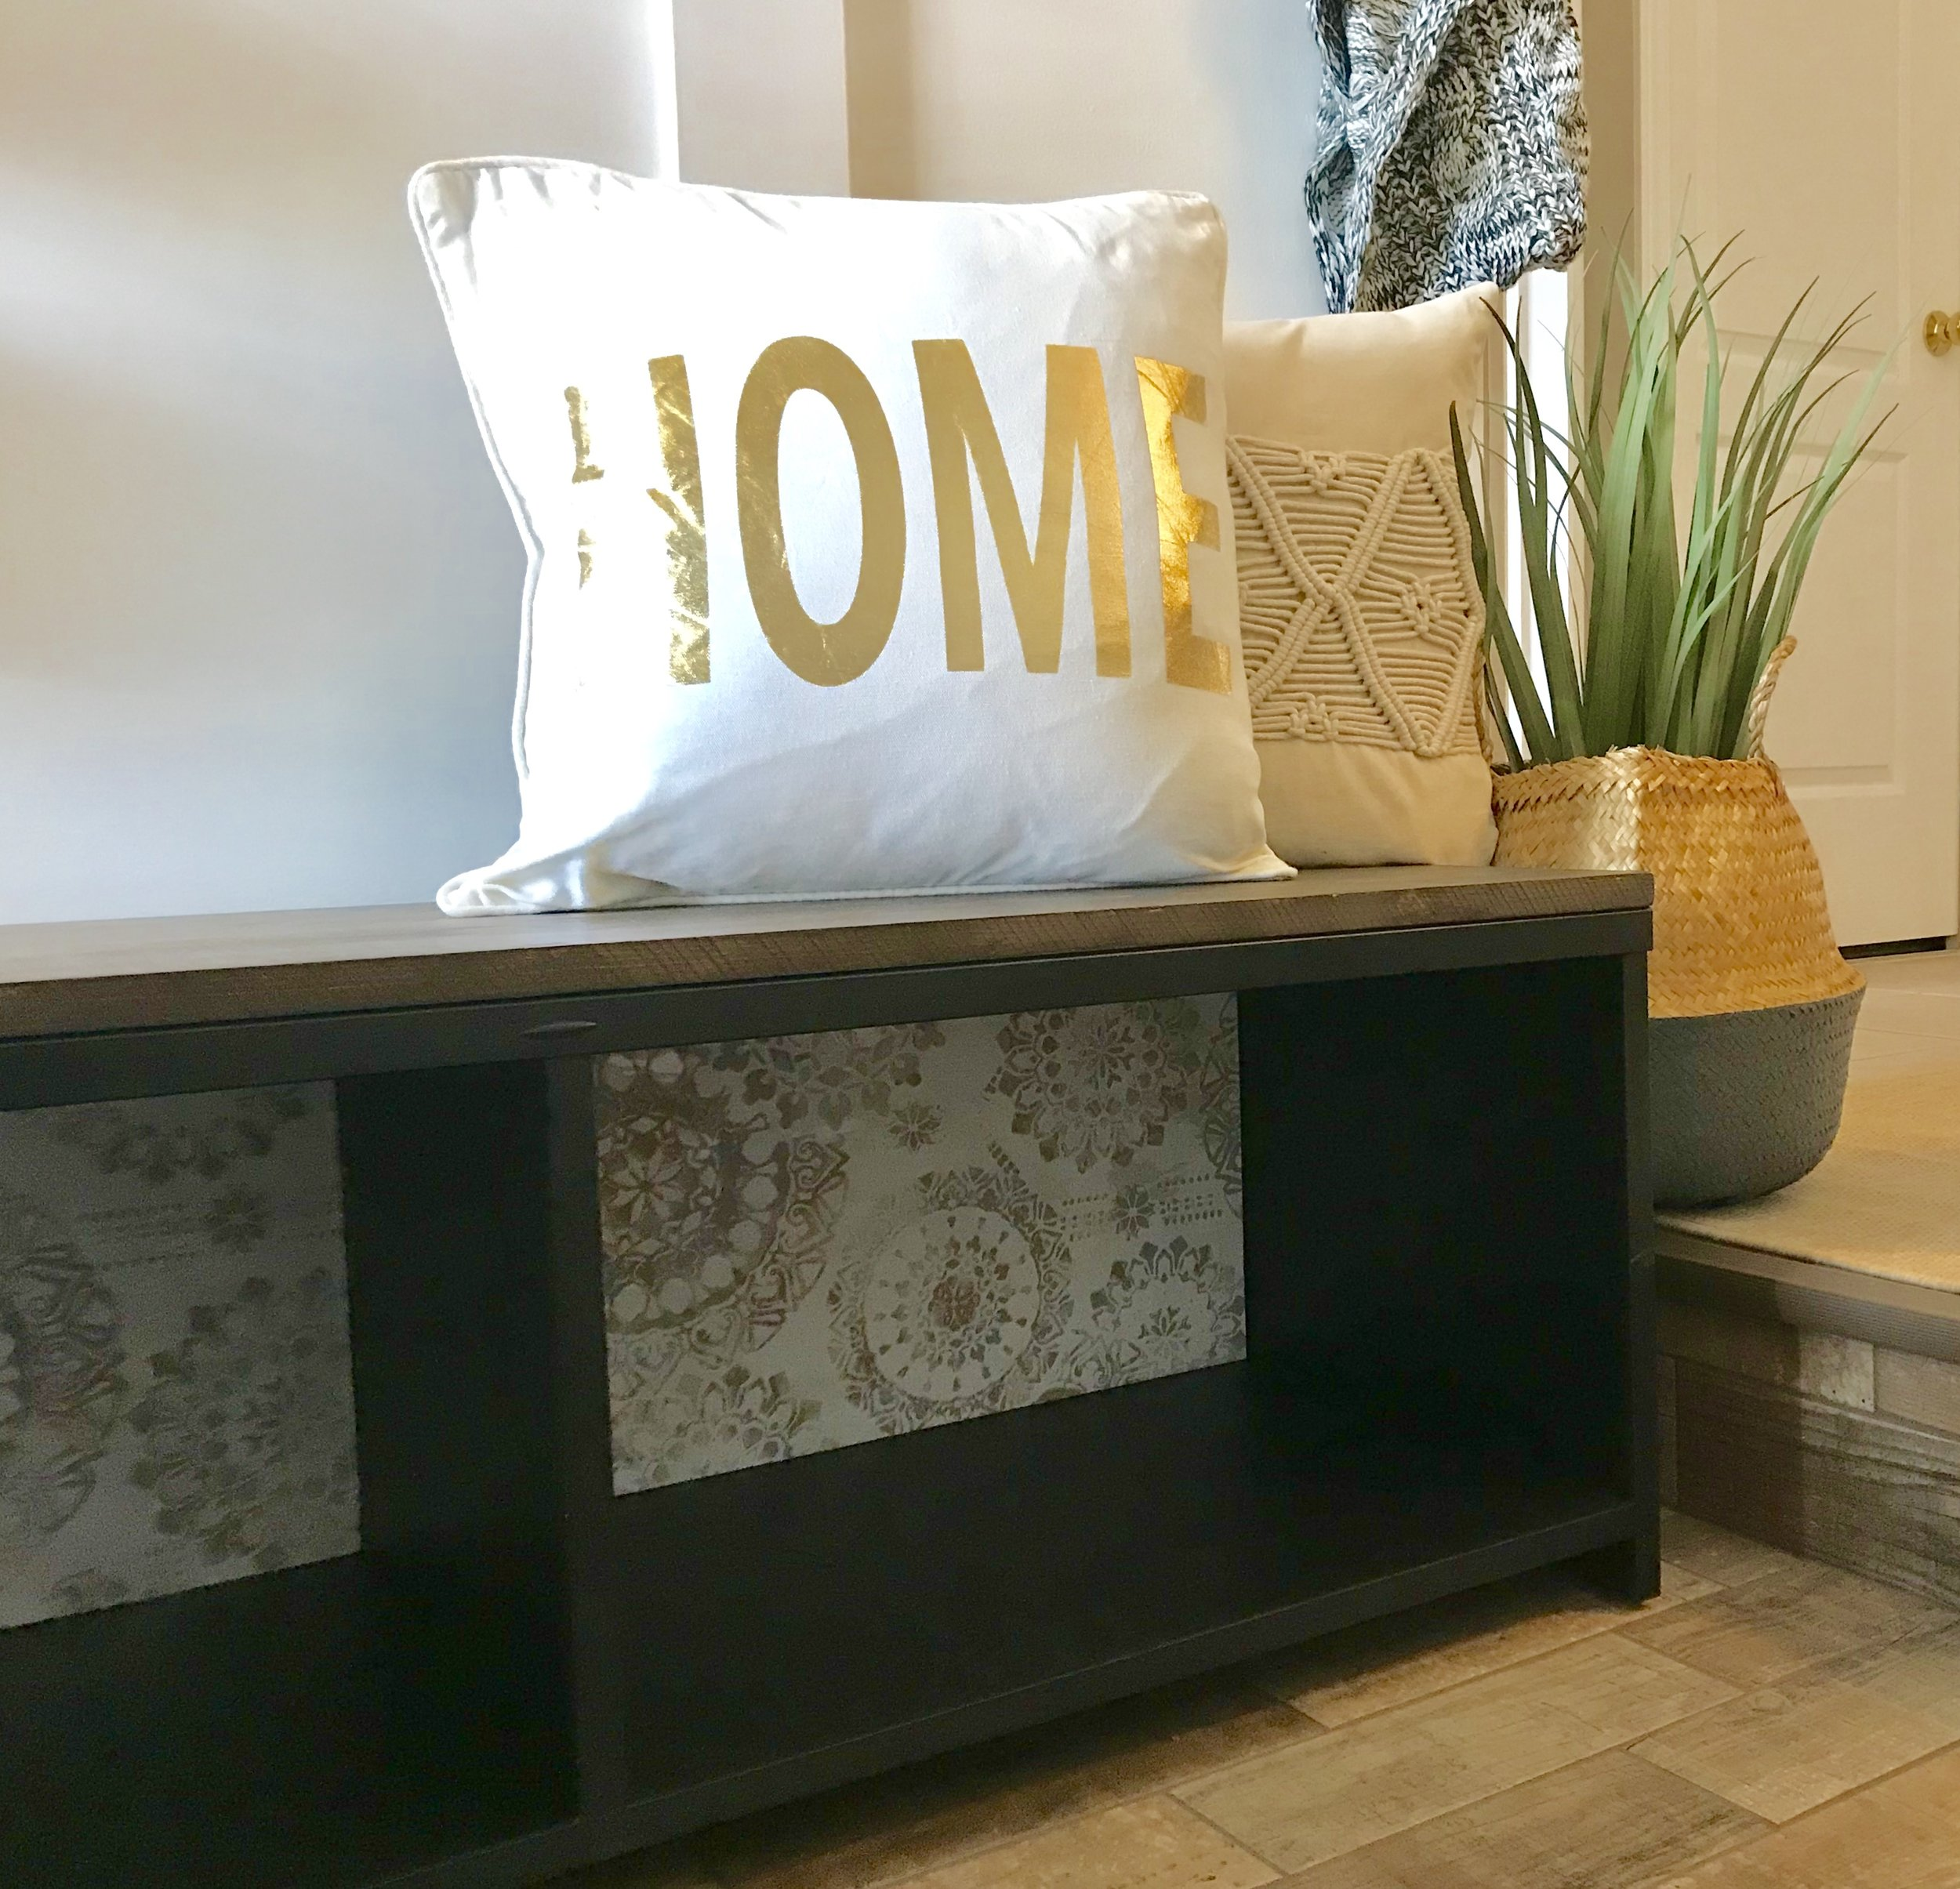 Leftover wallpaper can be used on furniture, in a picture frame, endless possibilities!